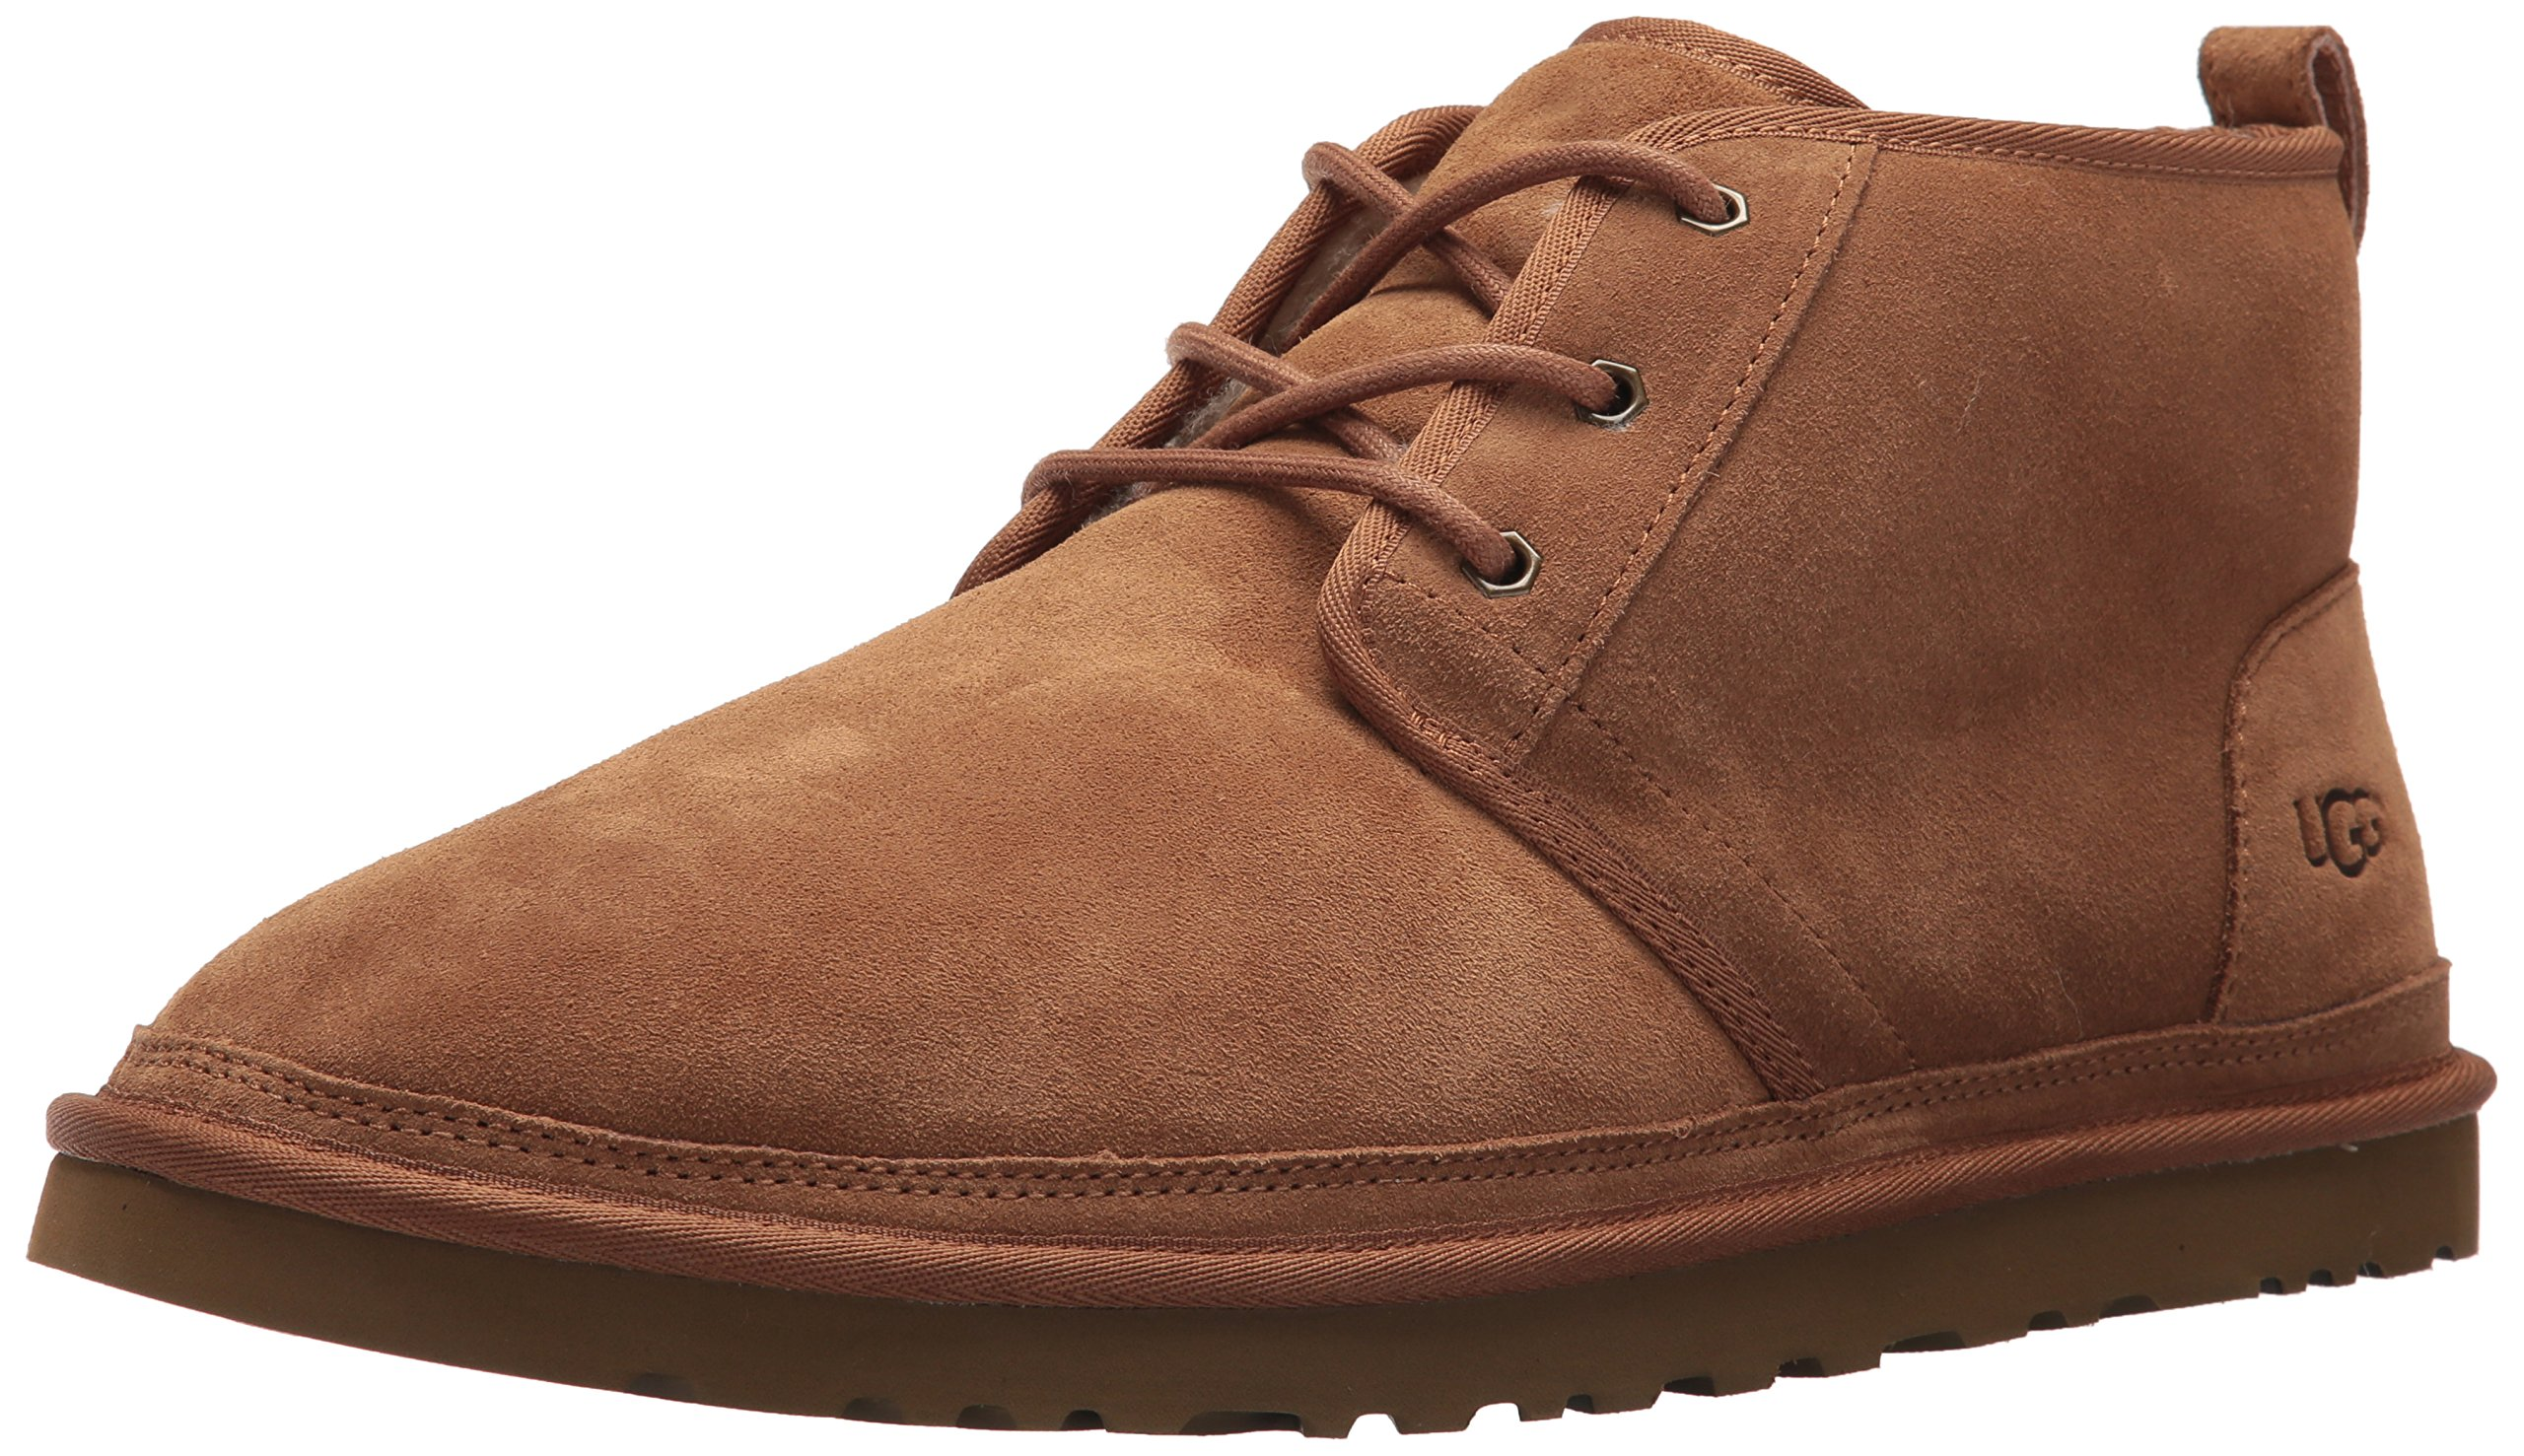 4b64d4a729f320 Best Rated in Men s Chukka Boots   Helpful Customer Reviews - Amazon.com